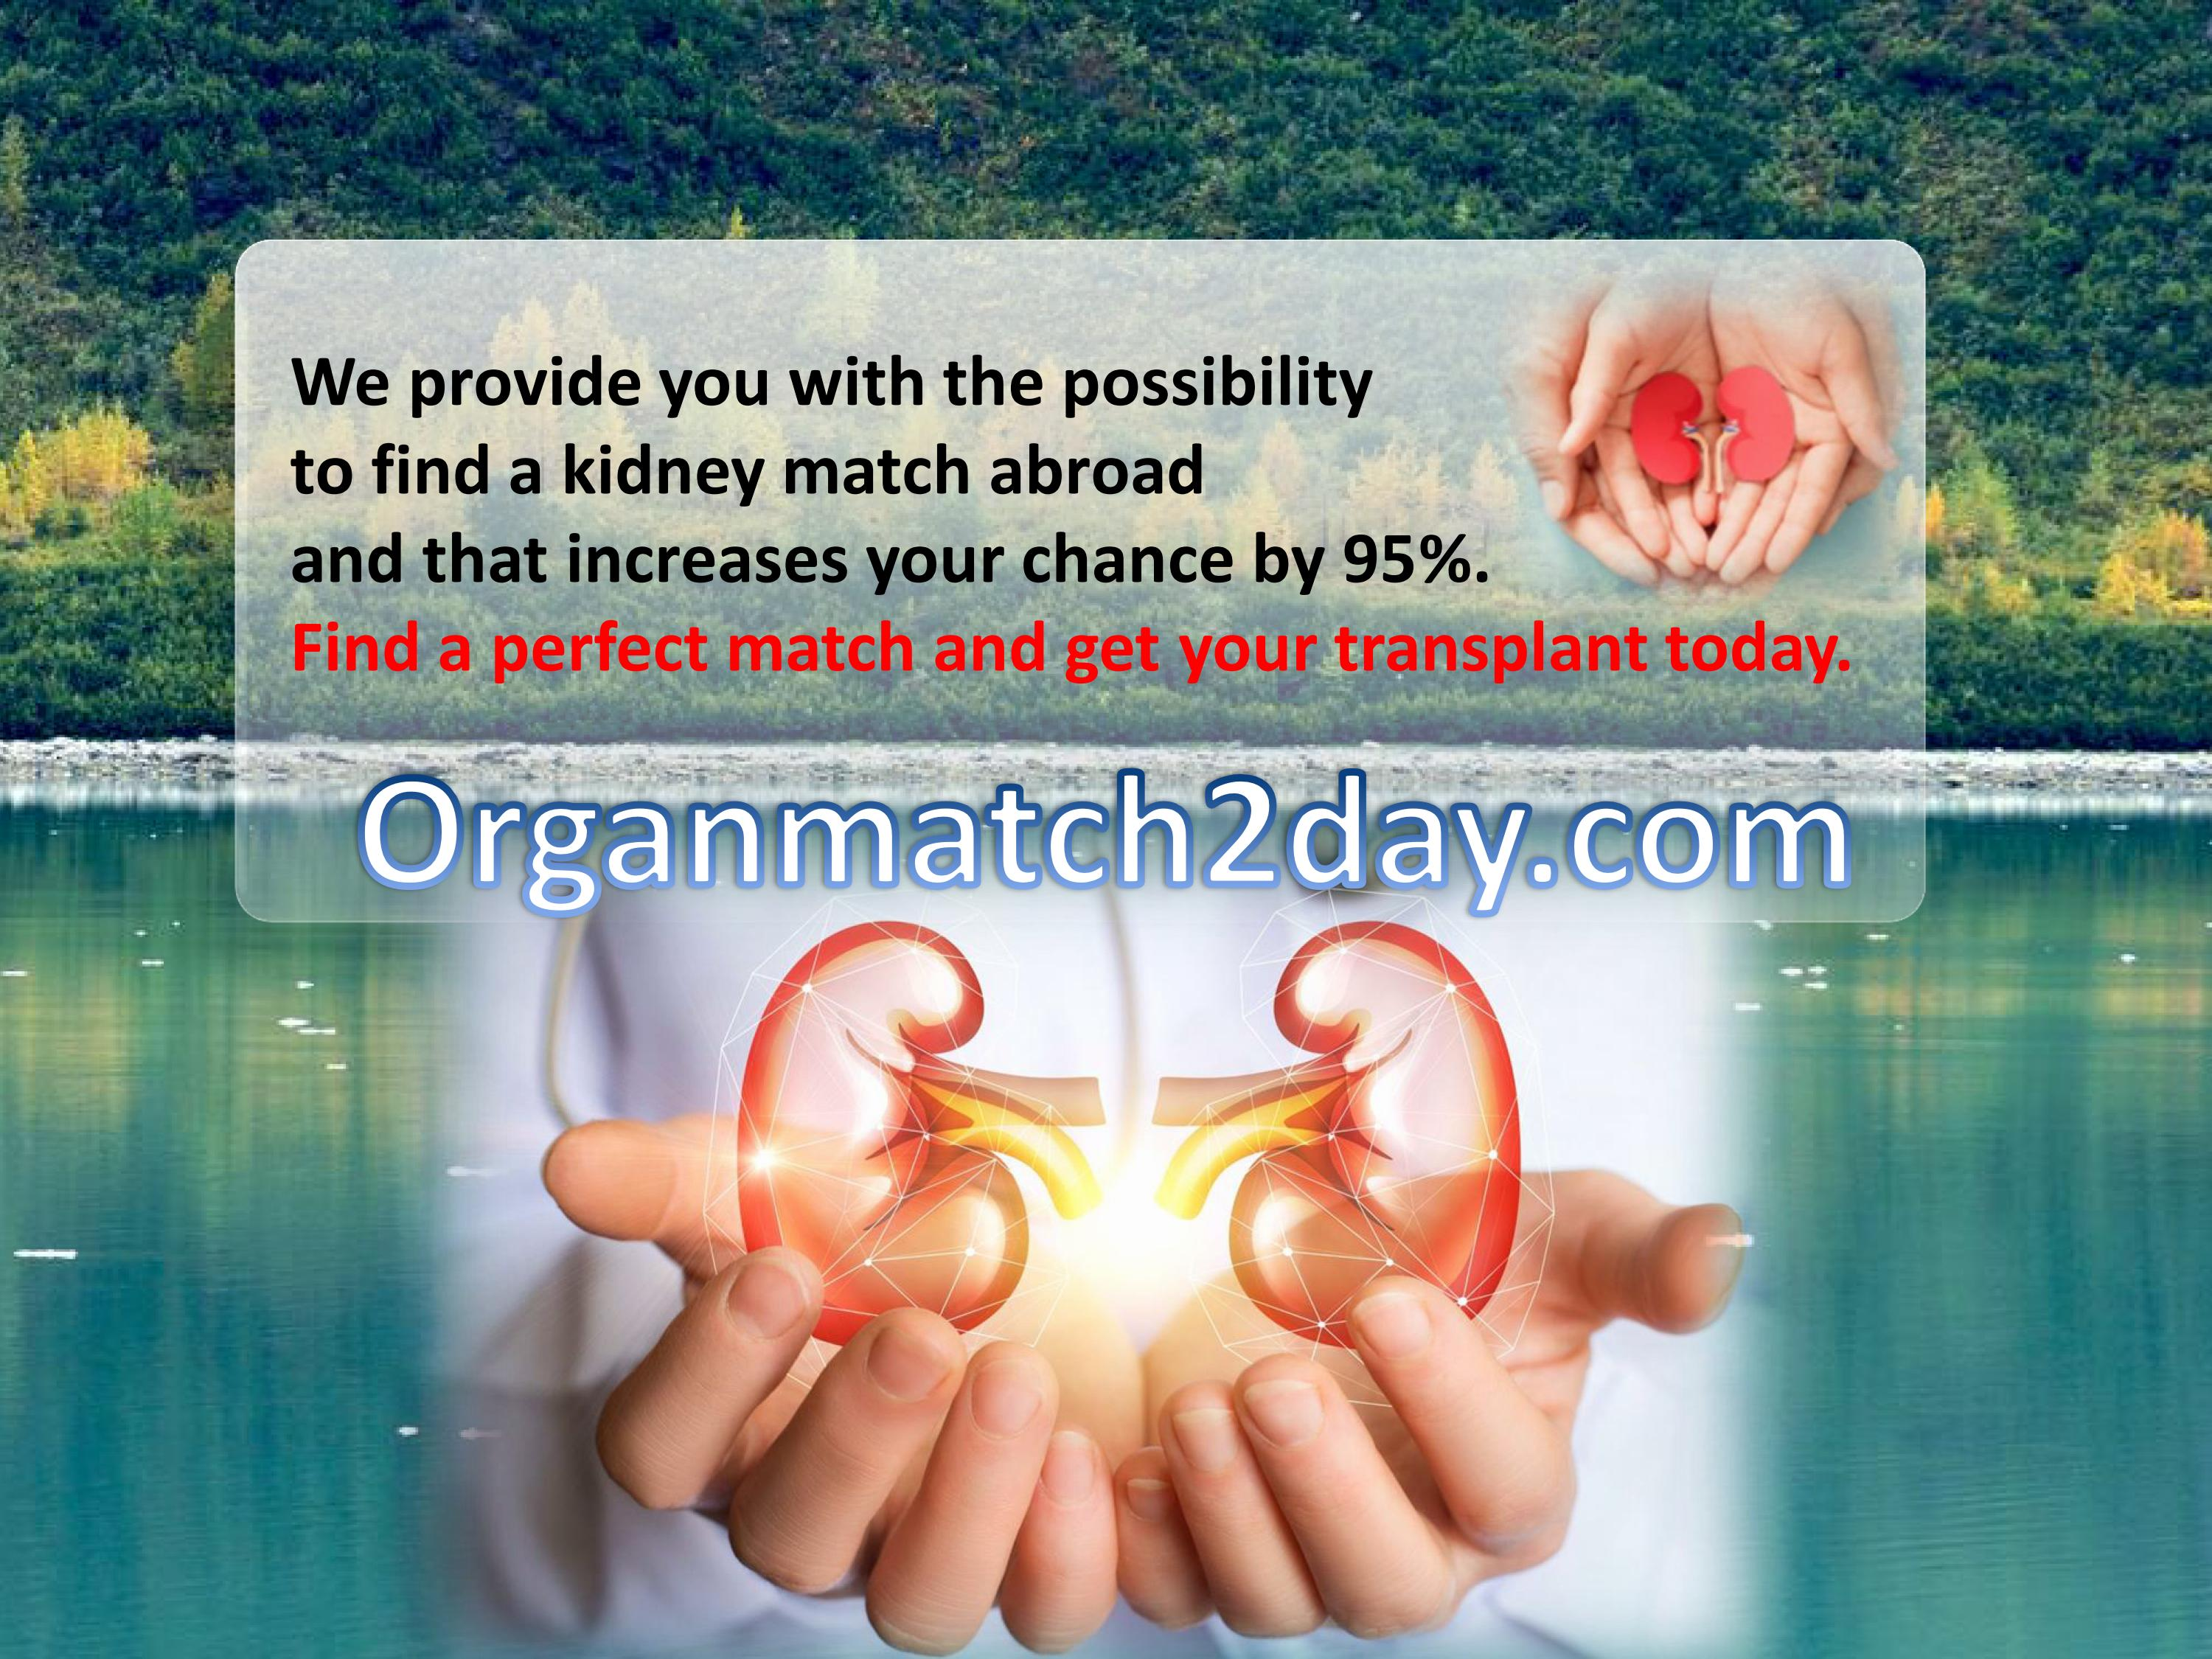 Find a kidney donor